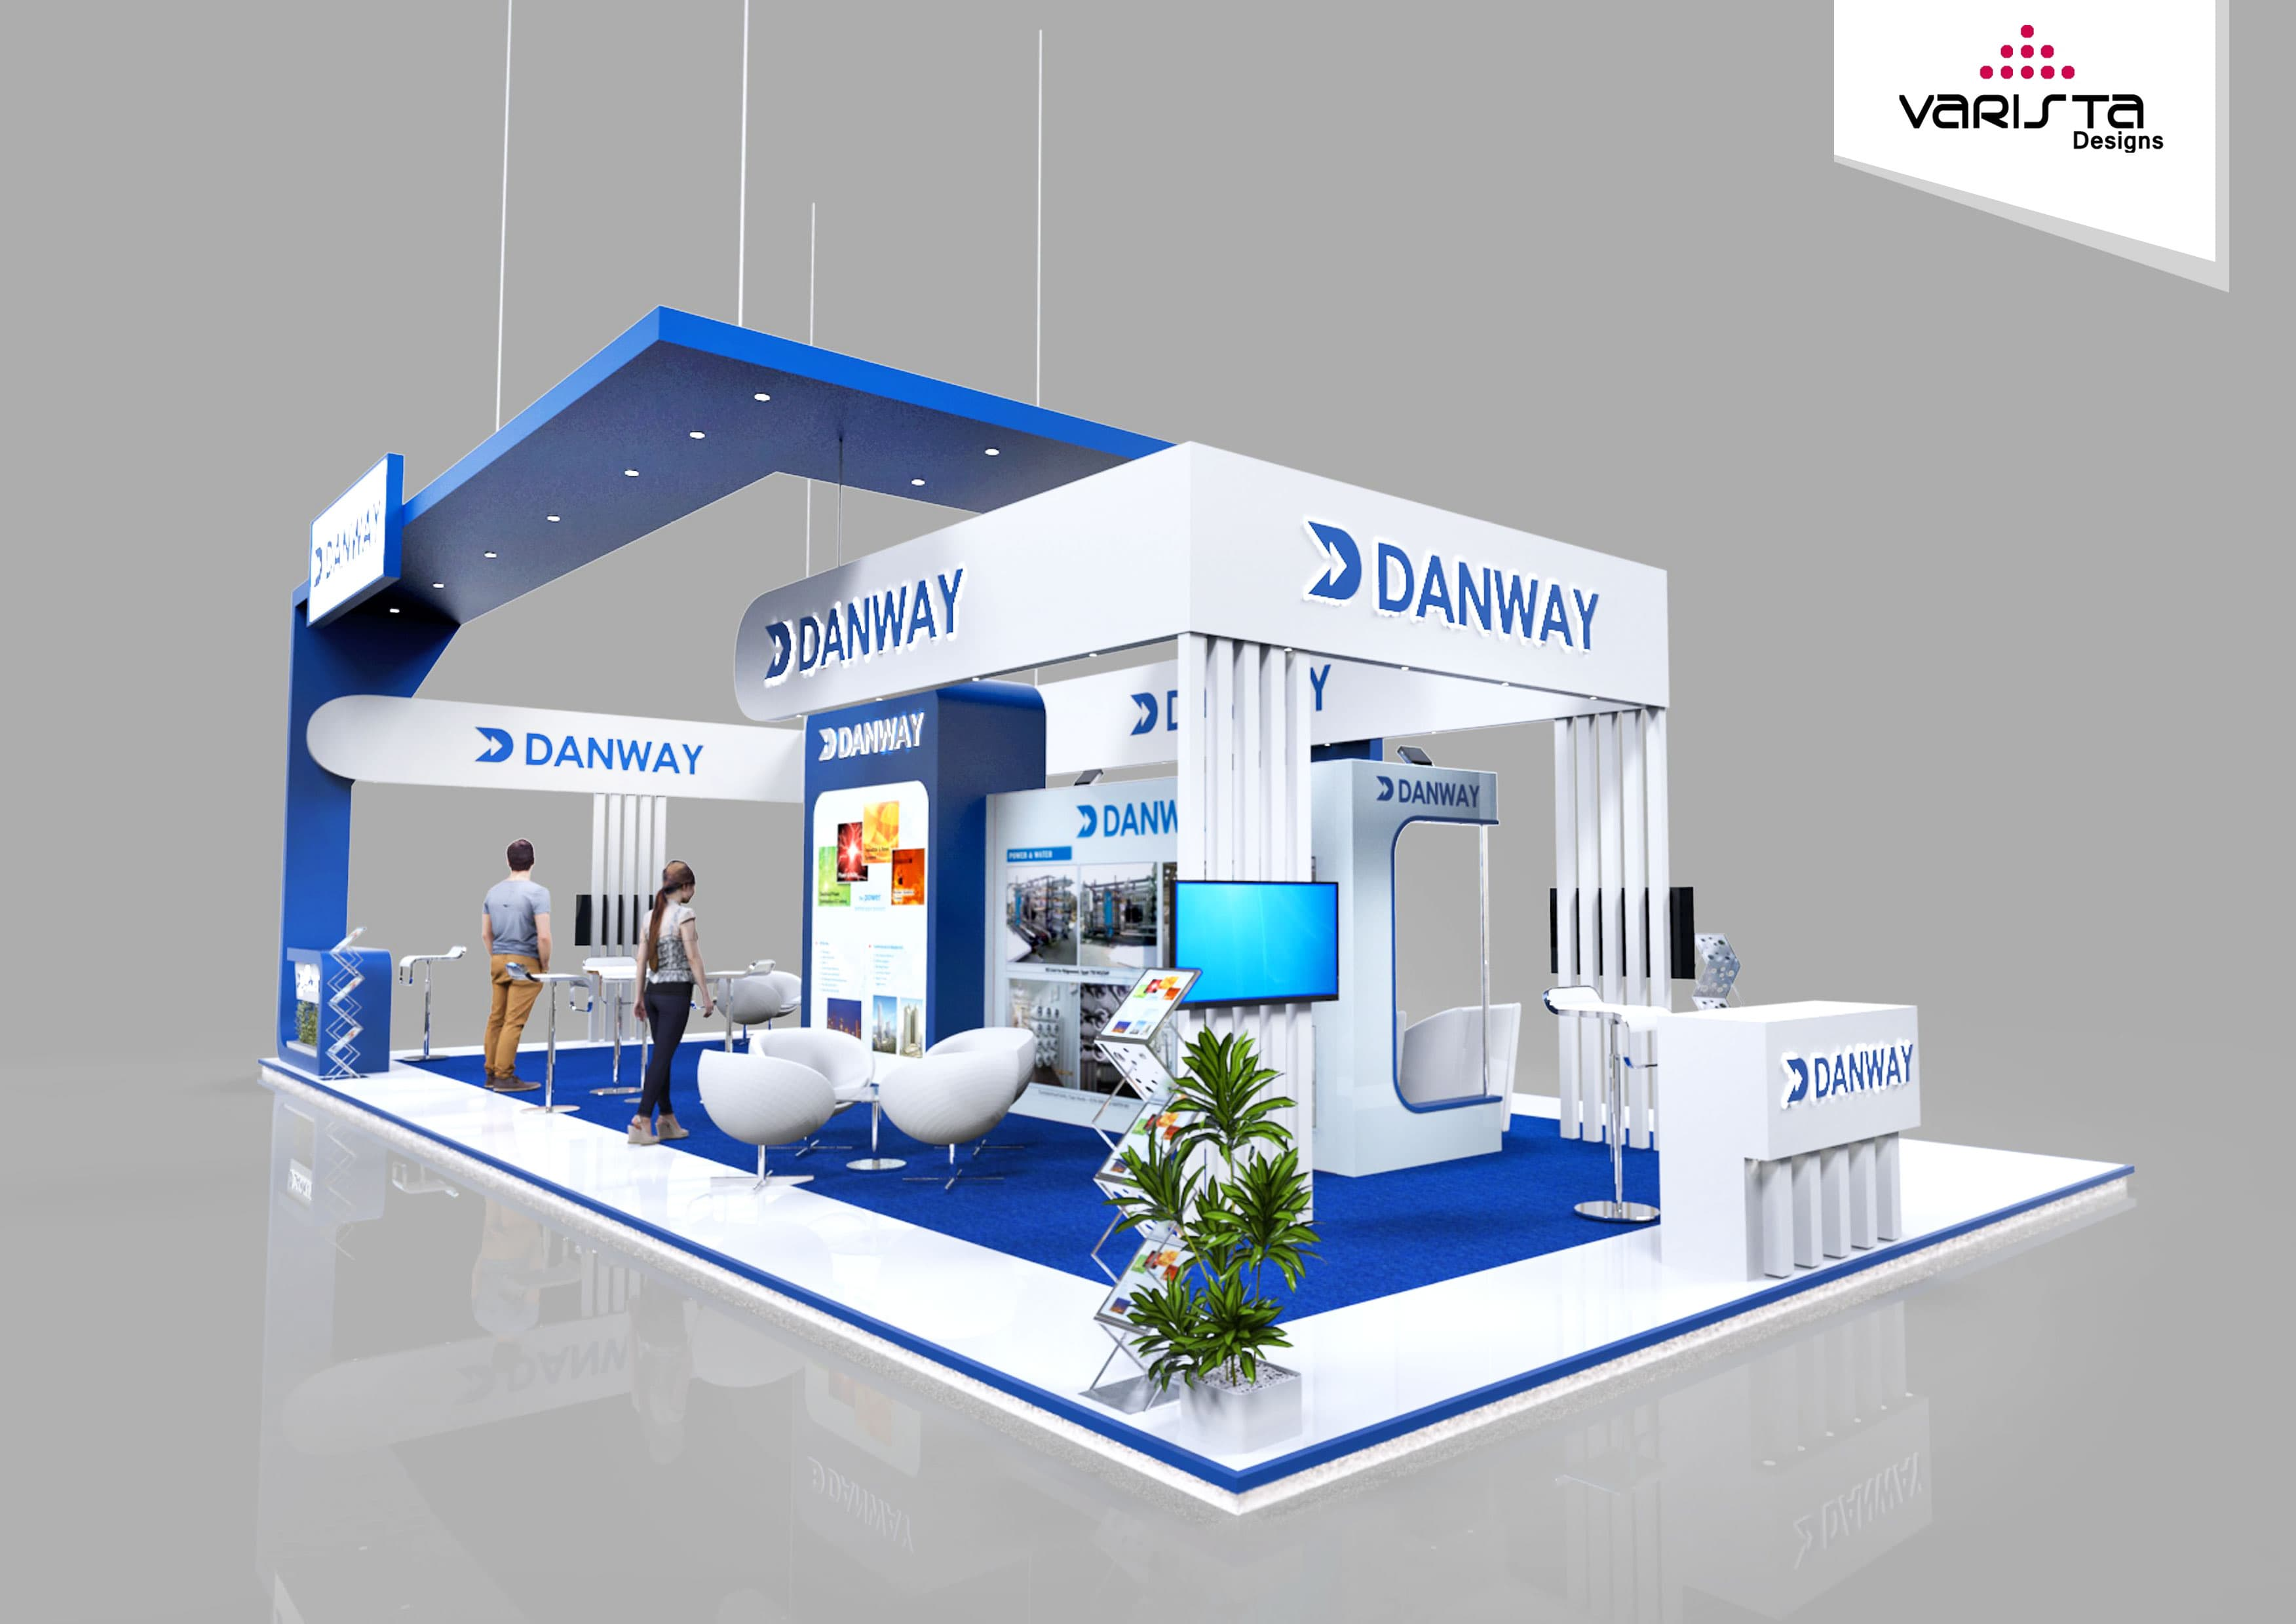 Exhibition Stand Design And Build Dubai : Exhibition stand design proposal for danway be a part of